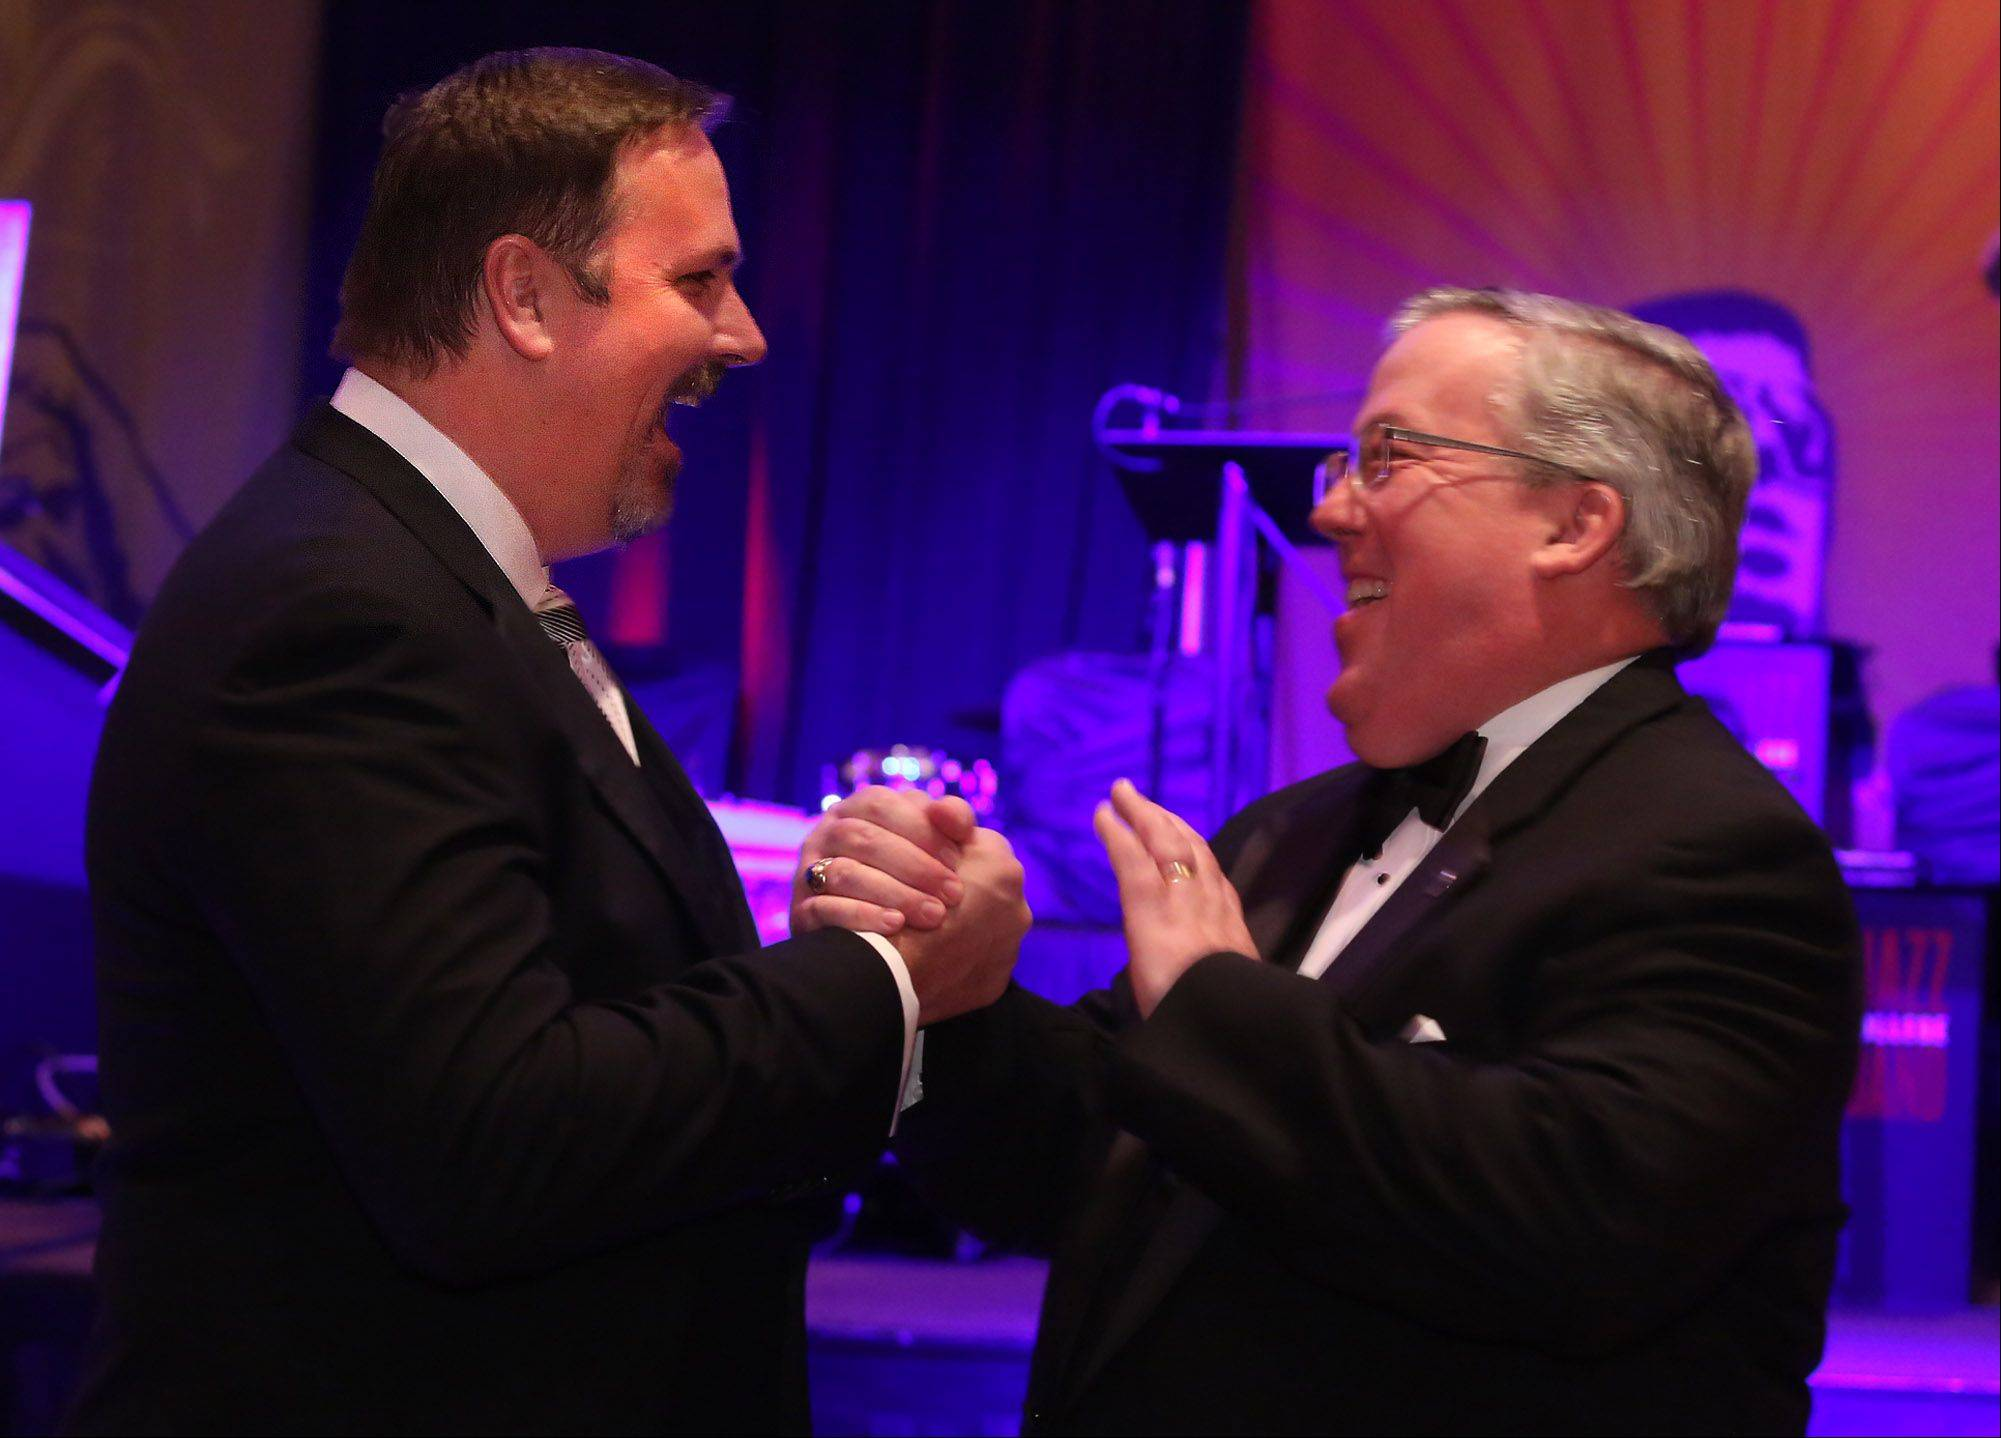 Robert O'Meara, president of Shelter, Inc. board of directors, of Barrington, right, speaks with Richard Sykes of Inverness before O'Meara presented Sykes with the Paul Buckholz award at the Shelter Ball at the Hyatt Recency on Friday in Schaumburg.